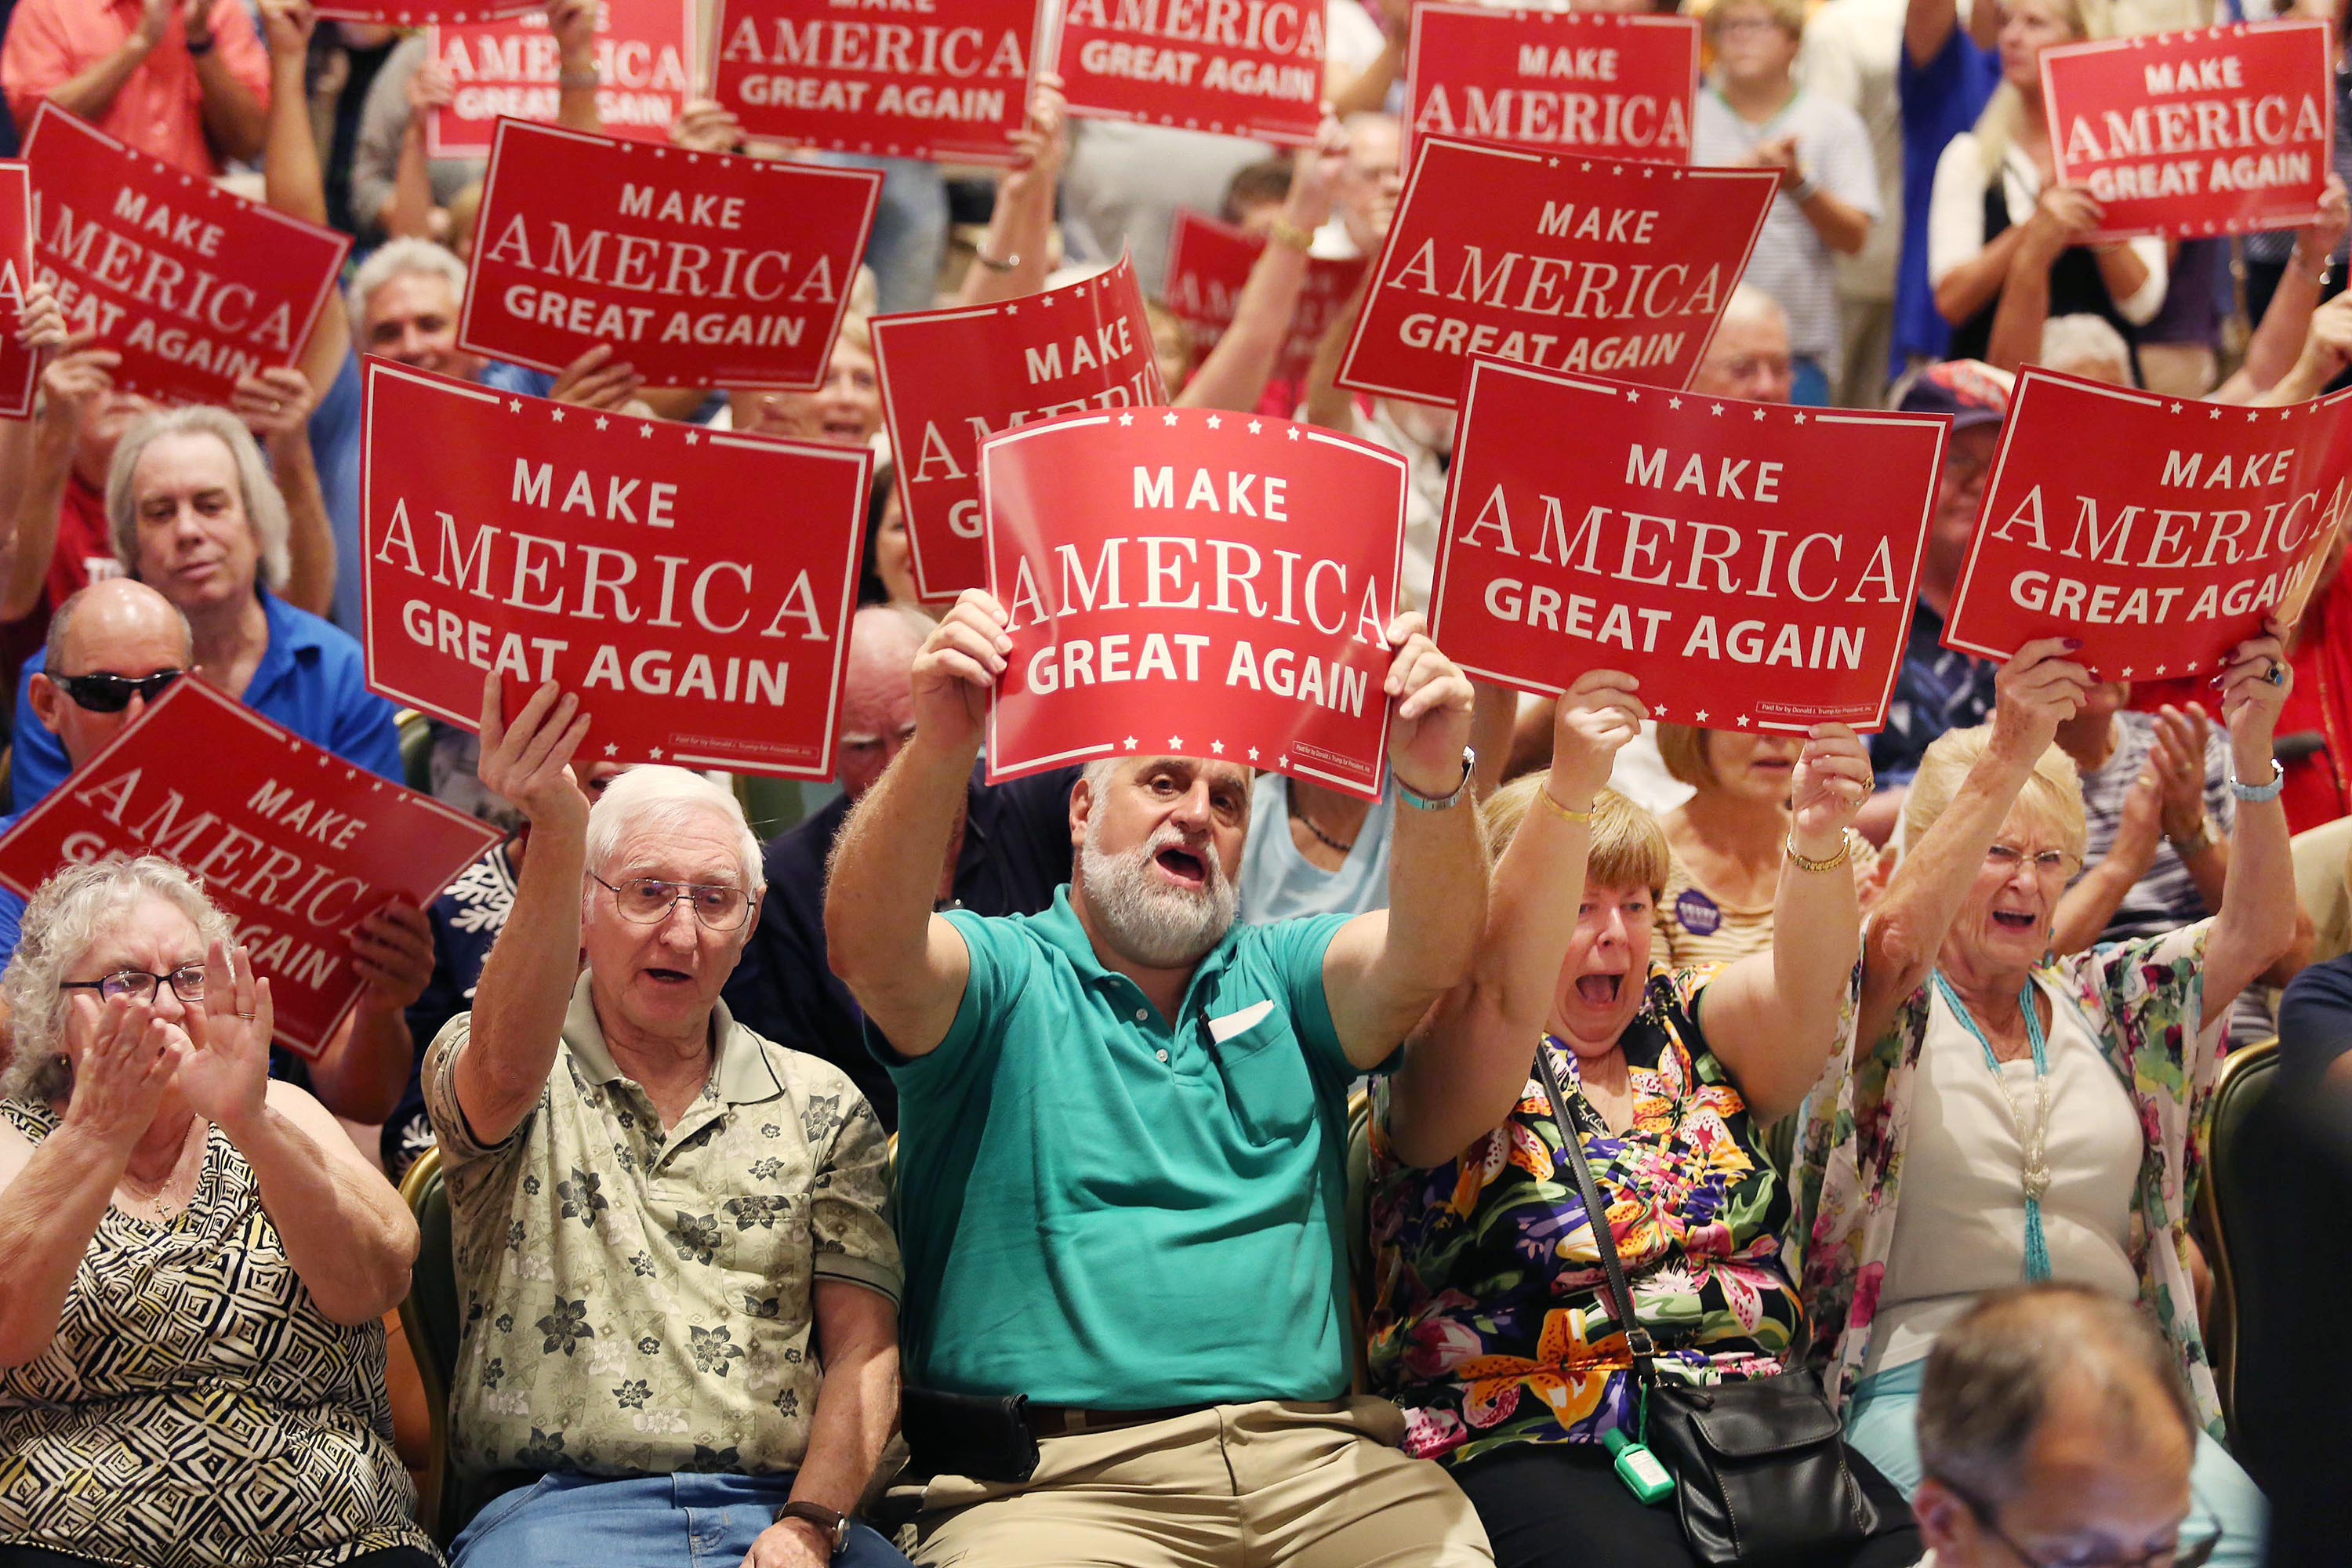 Supporters cheer as then-Republican vice presidential candidate Mike Pence speaks at a campaign rally at The Villages, Fla., on Saturday, Sept. 17, 2016.